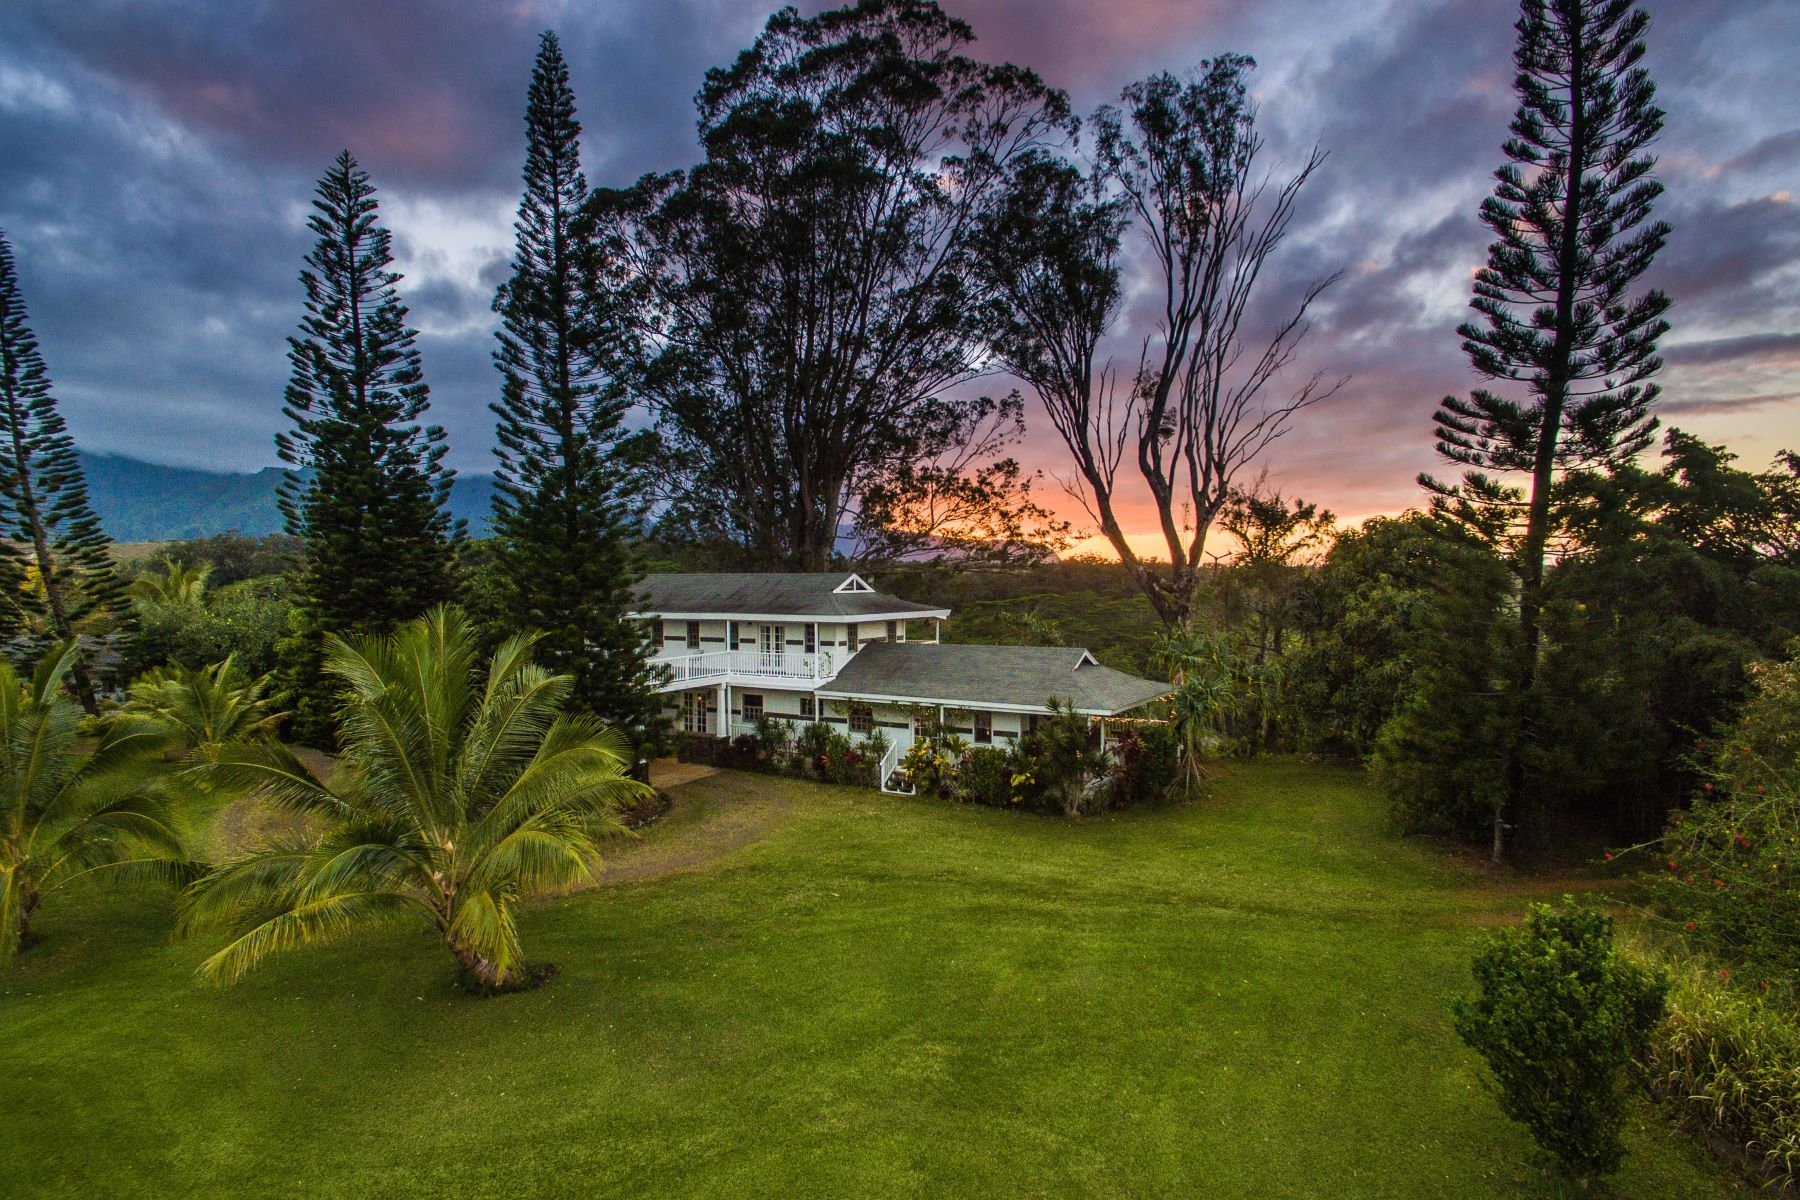 Tek Ailelik Ev için Satış at Kauai 5-Acre Multi-Family Estate with Mountain, Waterfall, Sunset & Valley Views 5150 Kahiliholo Road #A Kilauea, Hawaii 96754 Amerika Birleşik Devletleri